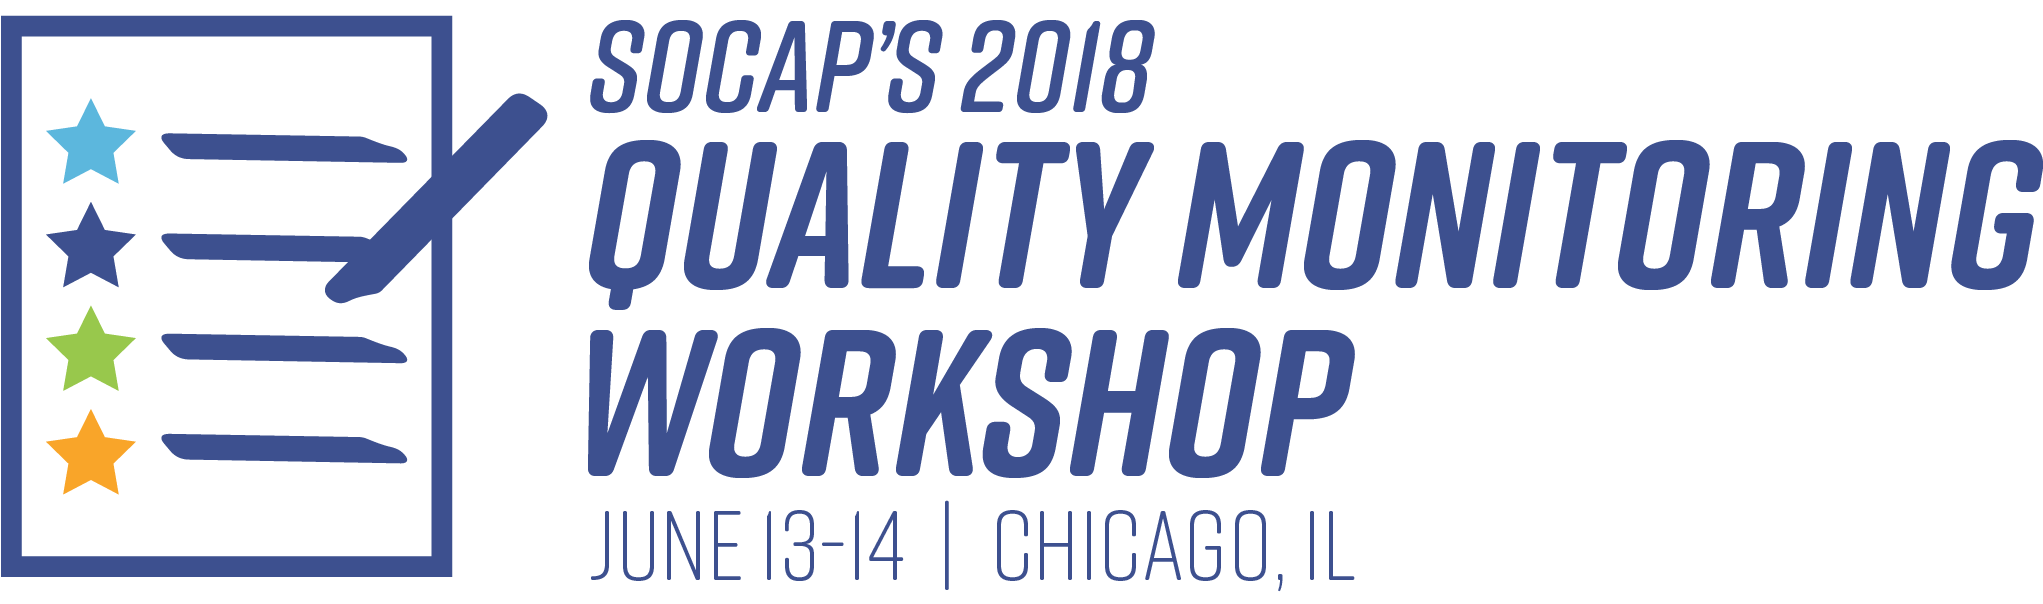 2018 Quality Monitoring Workshop